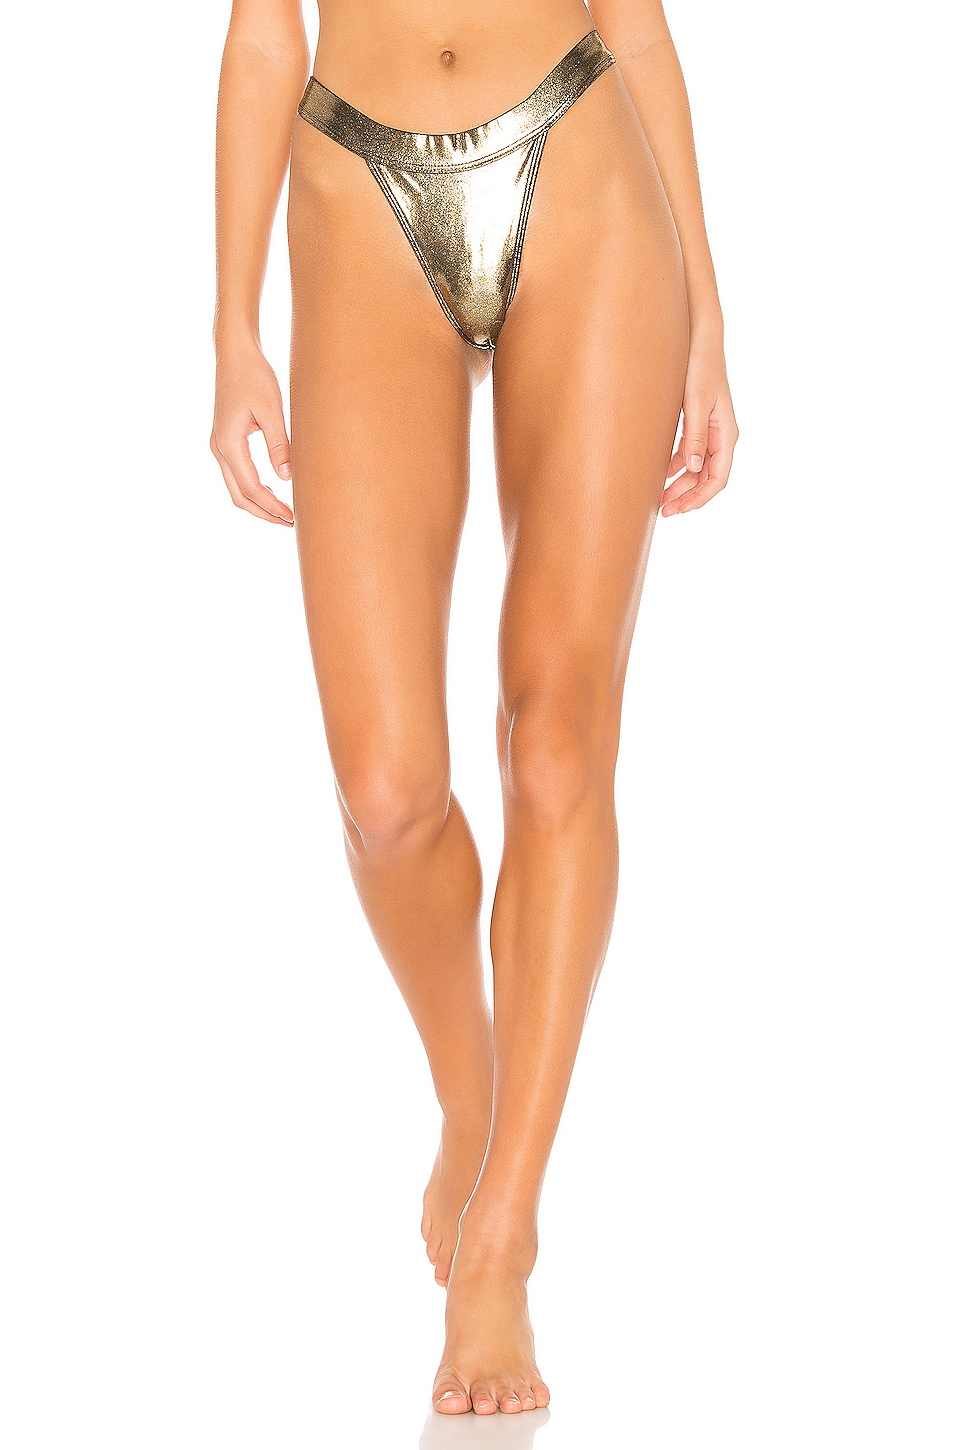 MINIMALE ANIMALE The Overdrive Brief Bikini Bottom in Star Fire Shimmer